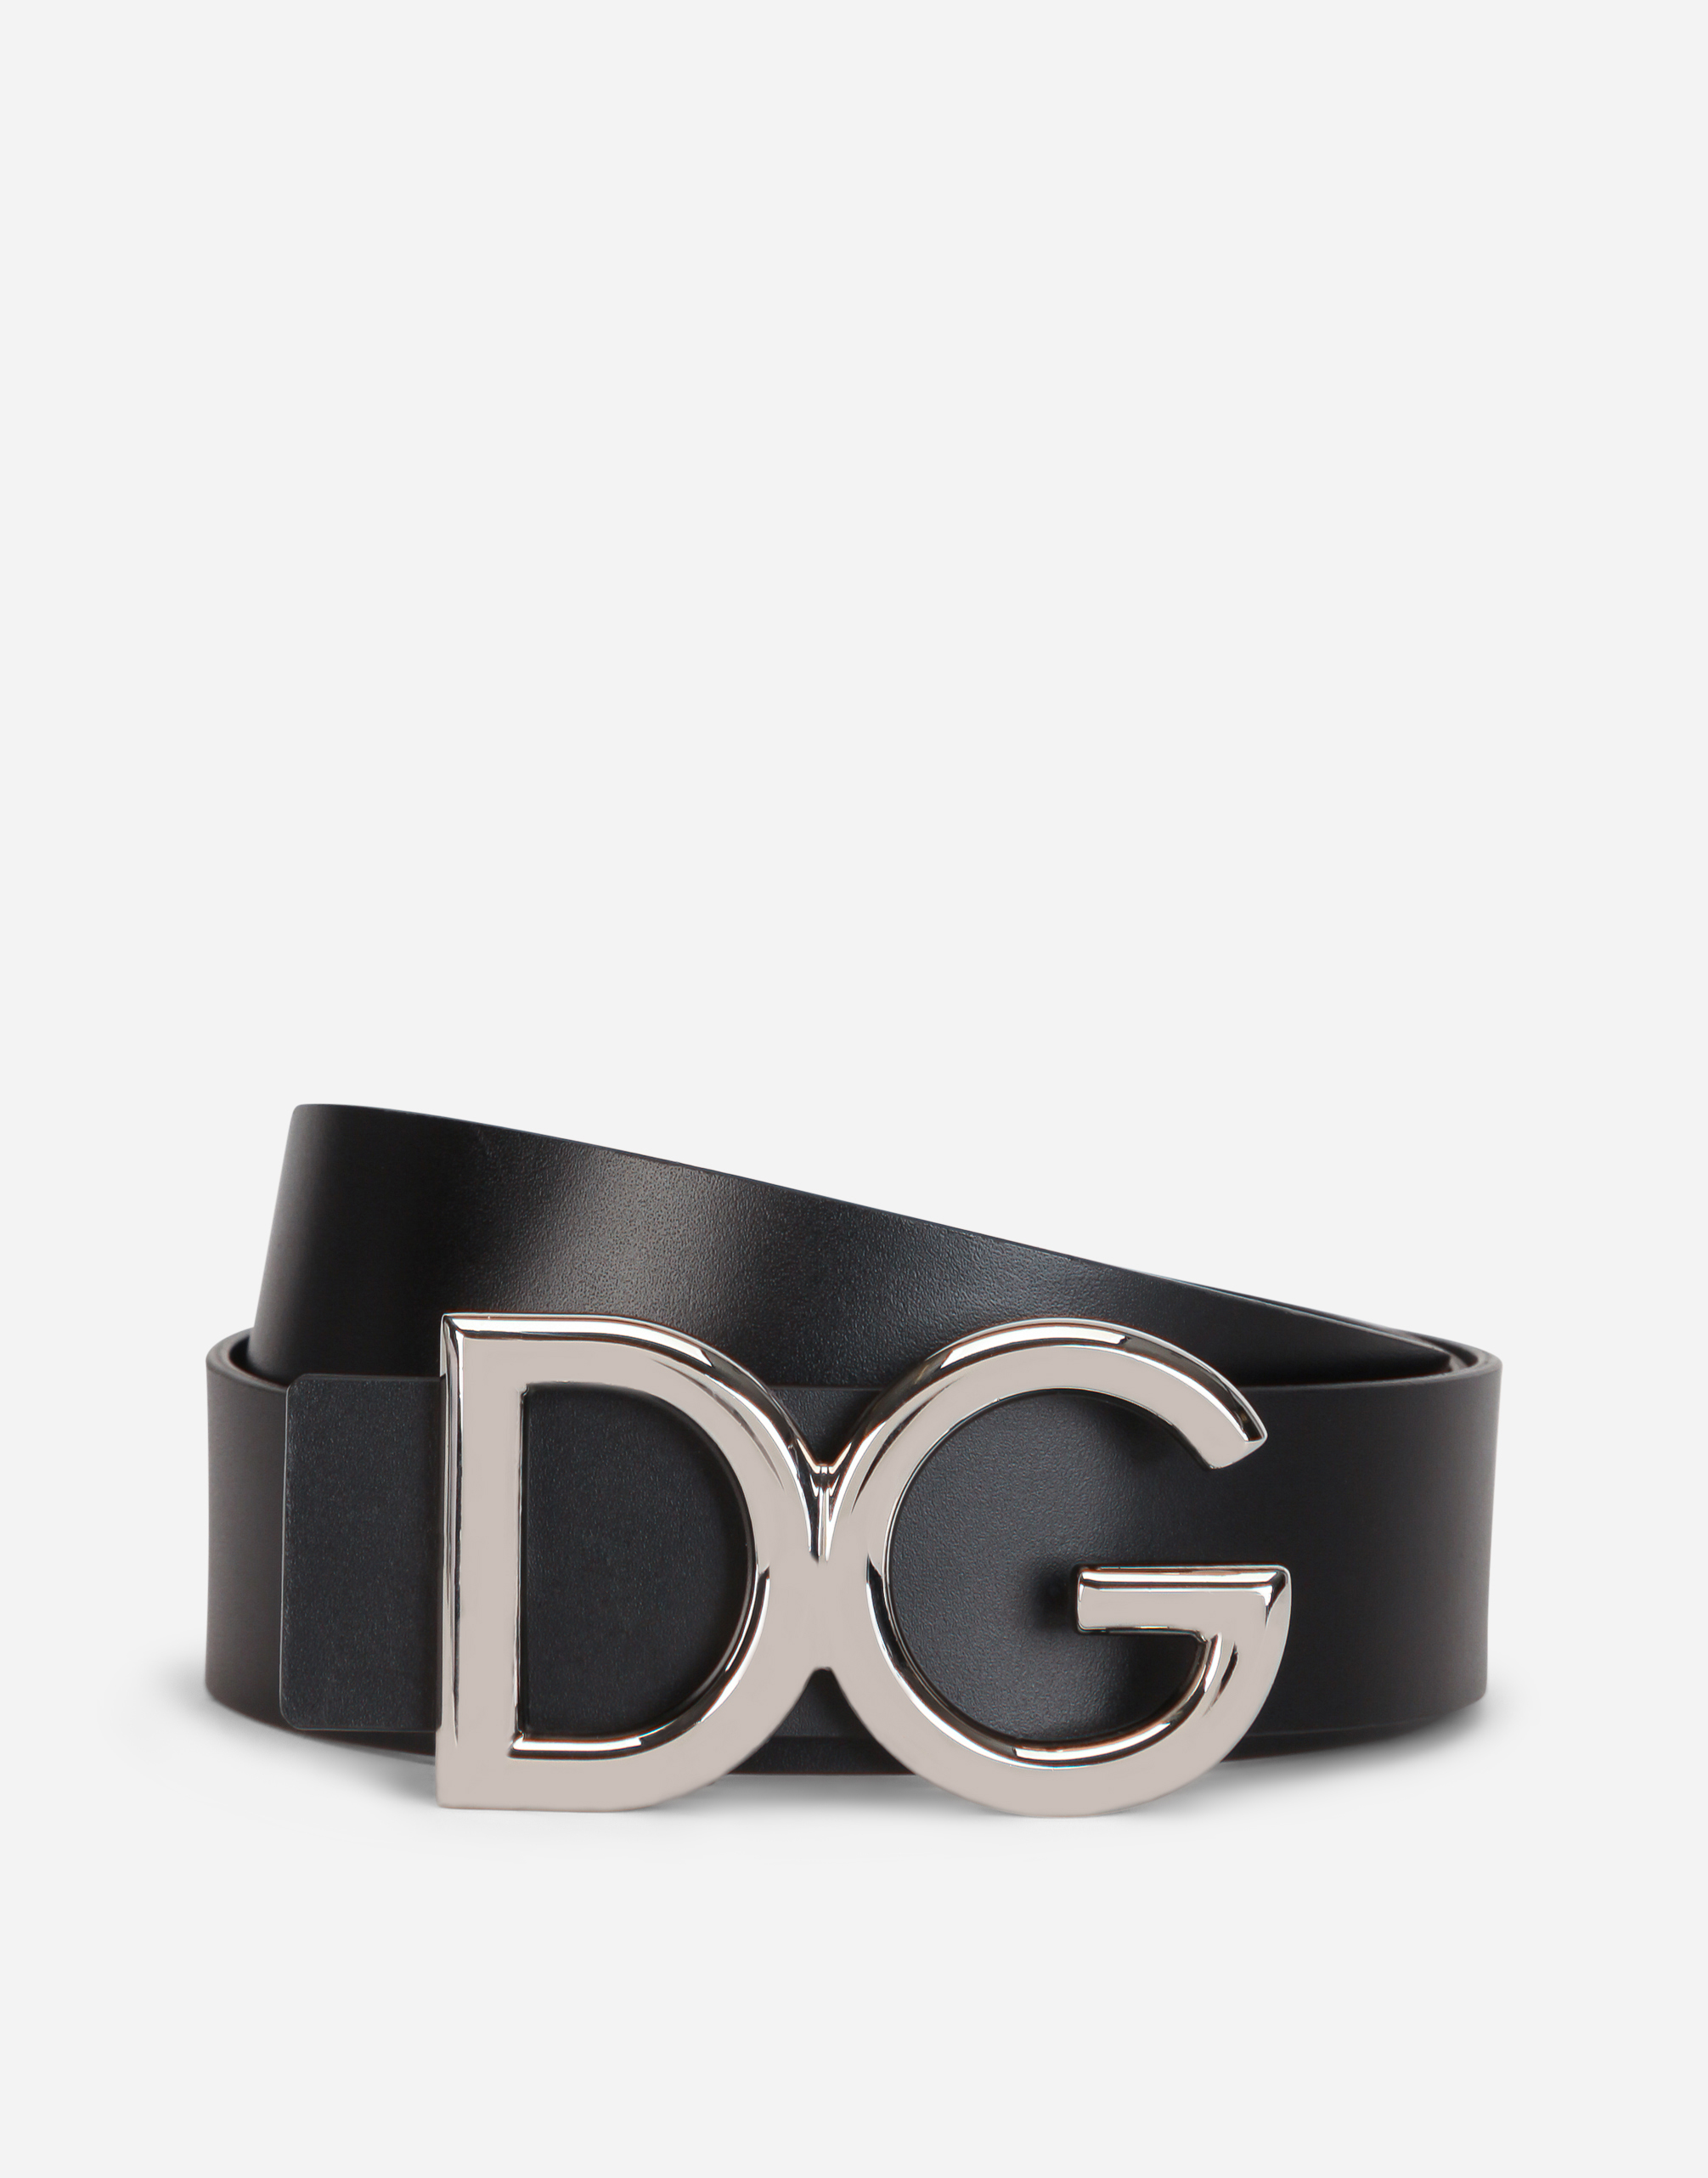 DAUPHINE LEATHER BELT